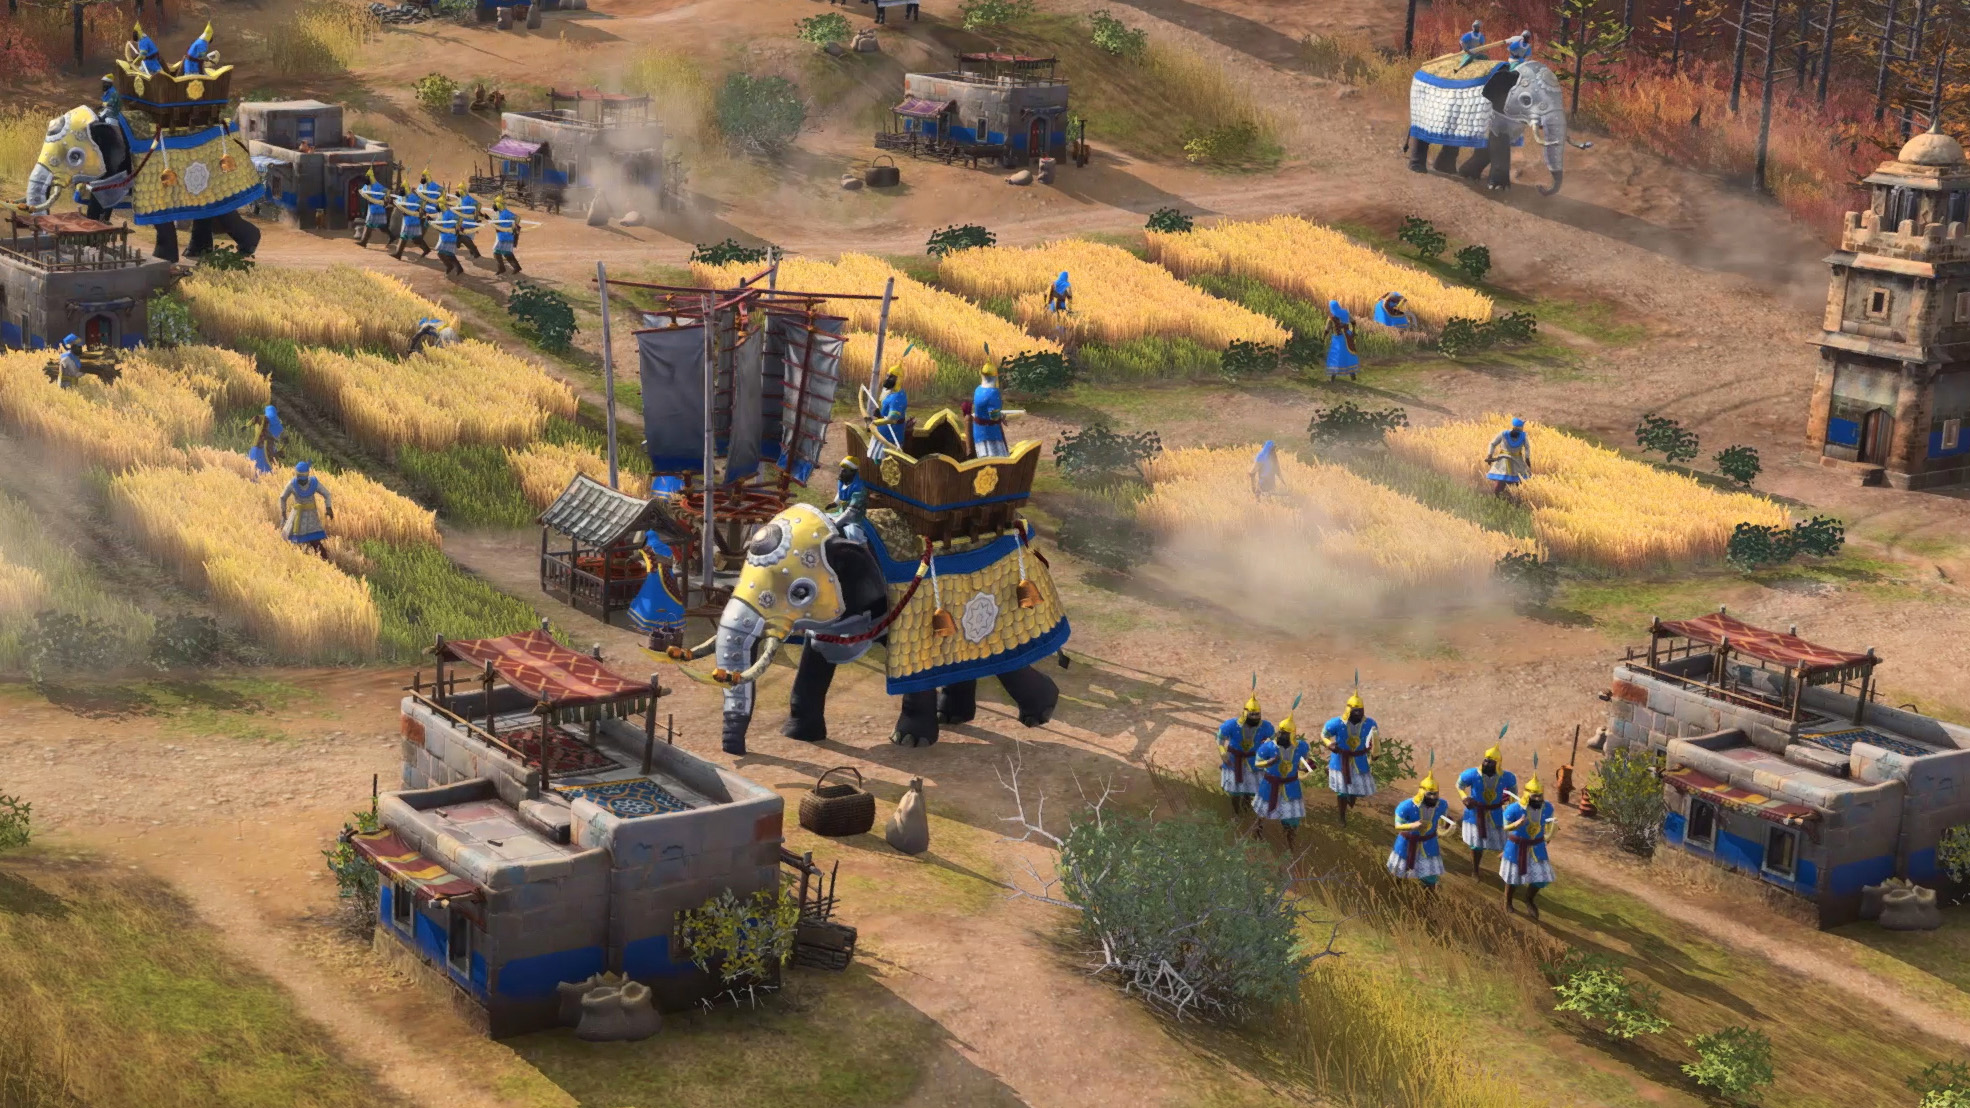 Age of Empires 4 is coming this fall with asymmetric factions, naval combat, and 4 historical campaigns